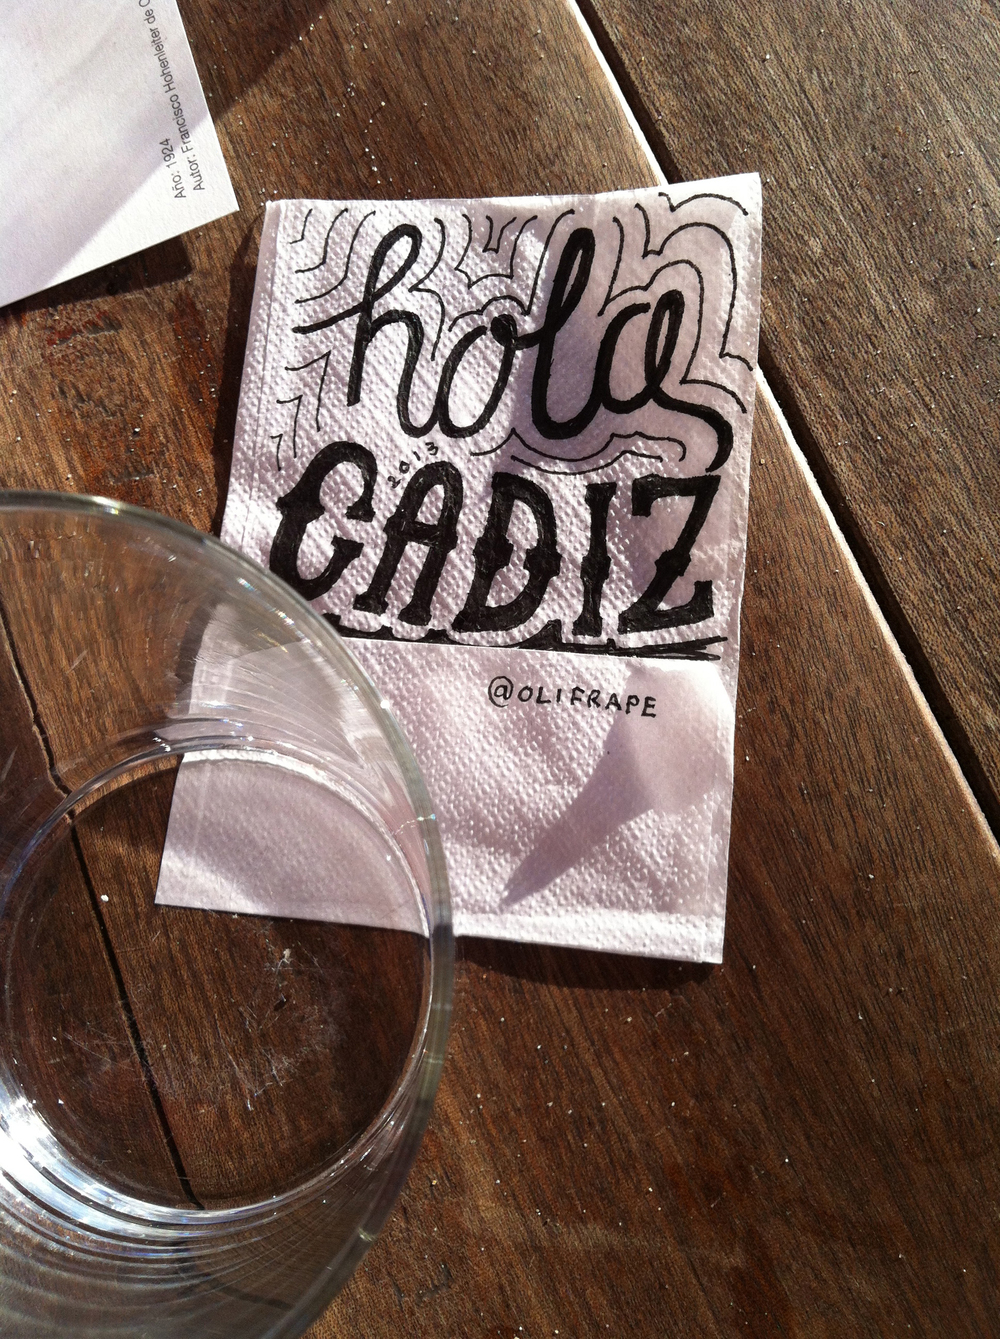 Hola Cadiz - A lunchtime doodle, beachside in a Cadiz bar